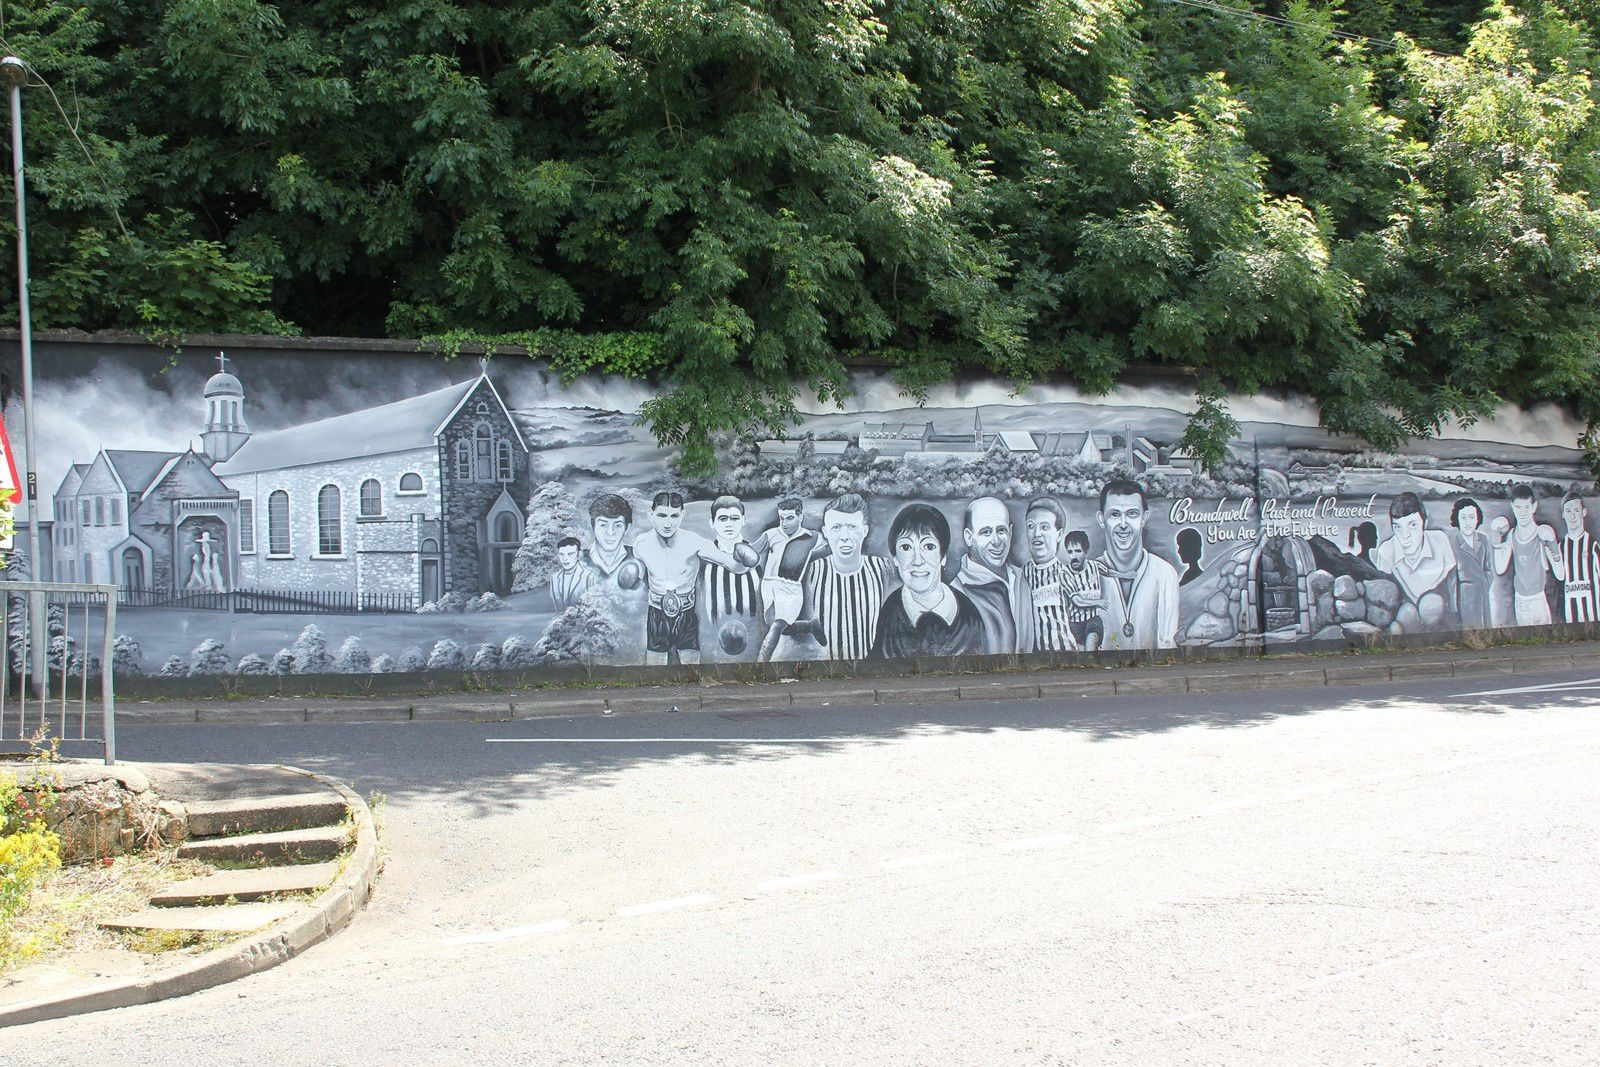 744) Lecky road, Brandywell, Derry